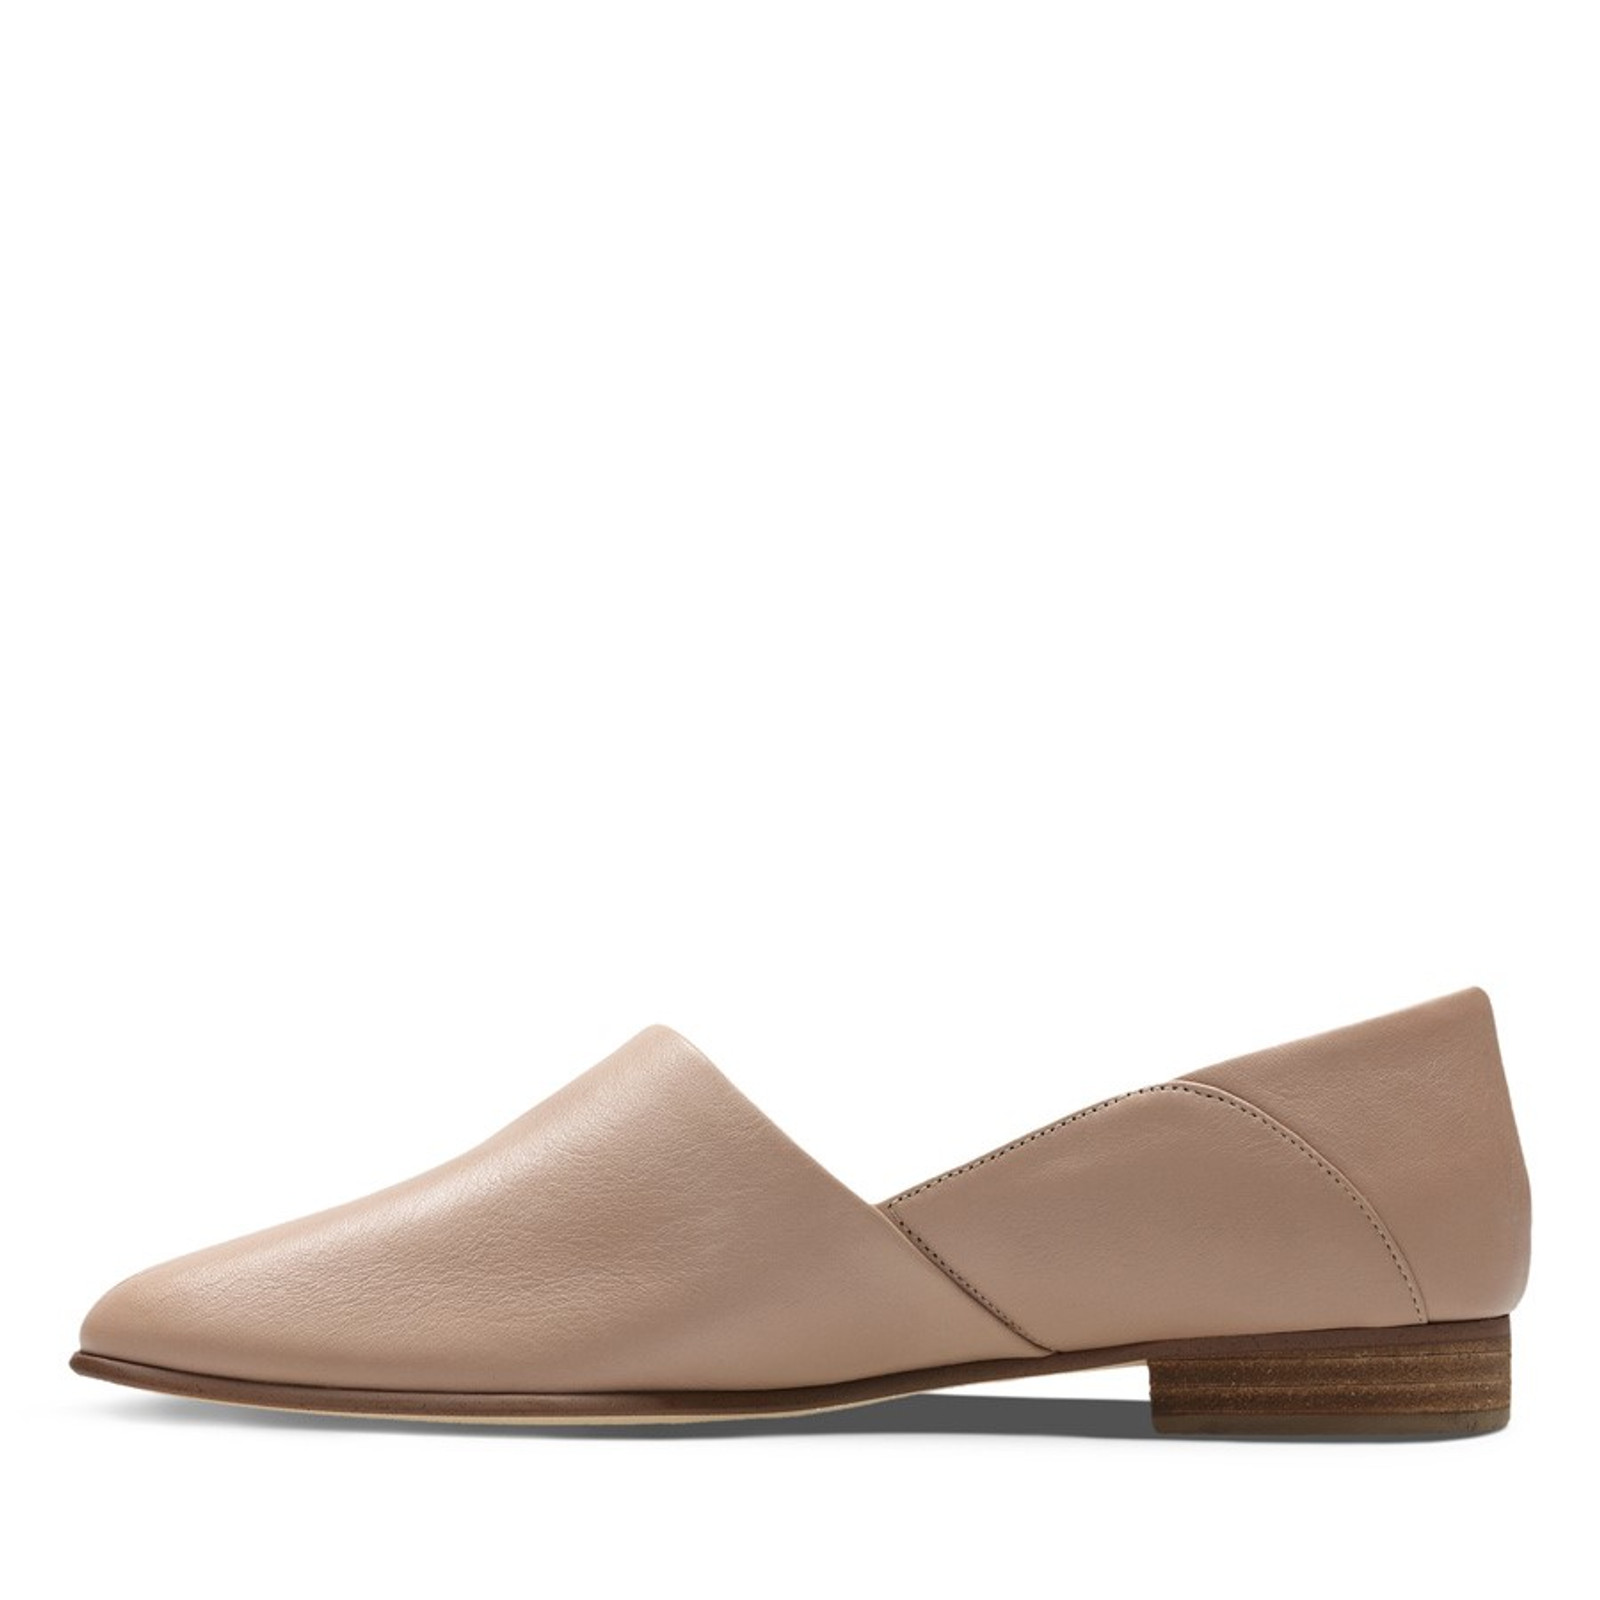 Clarks Womens PURE TONE Nude Leather